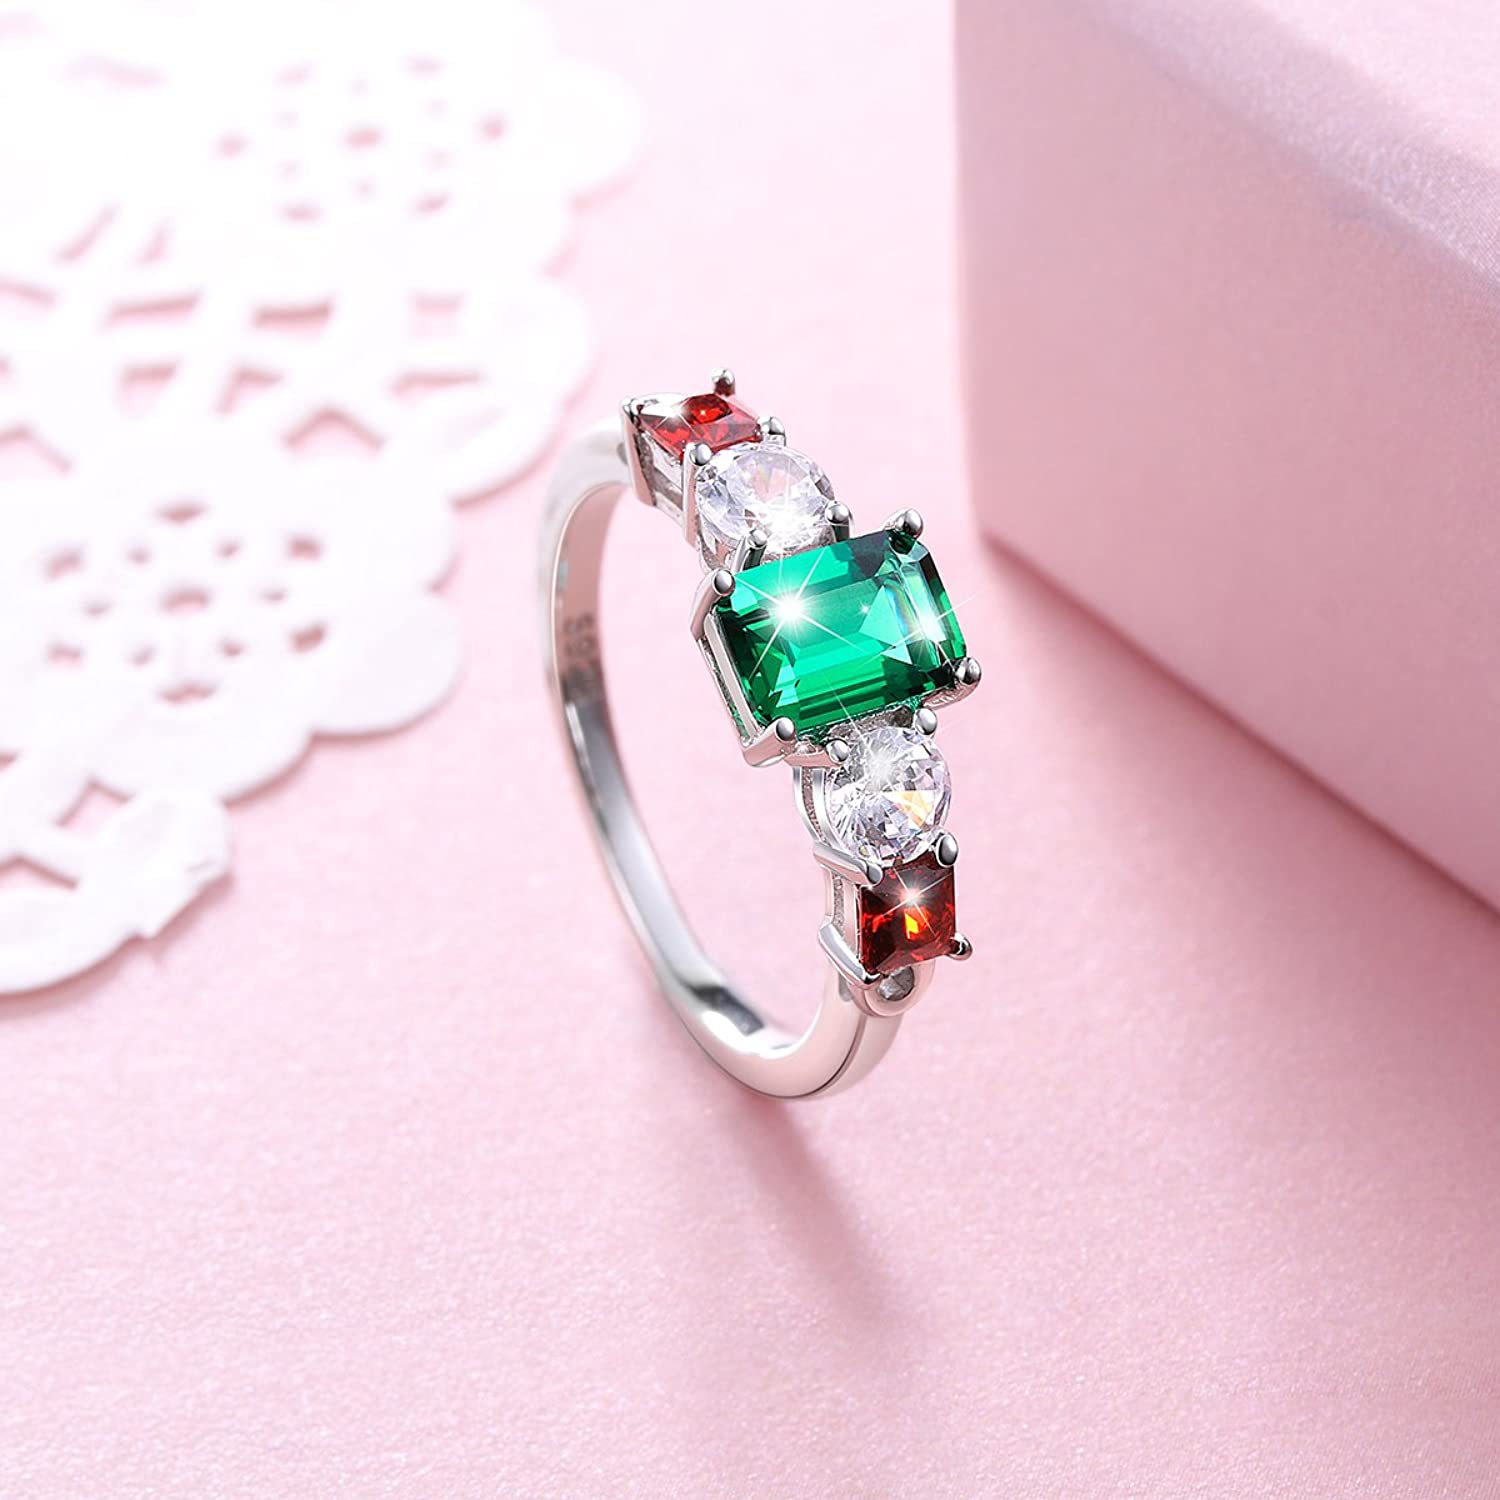 Amazon.com: Vintage Elegant Jewelry 925 Sterling Silver Green and ...